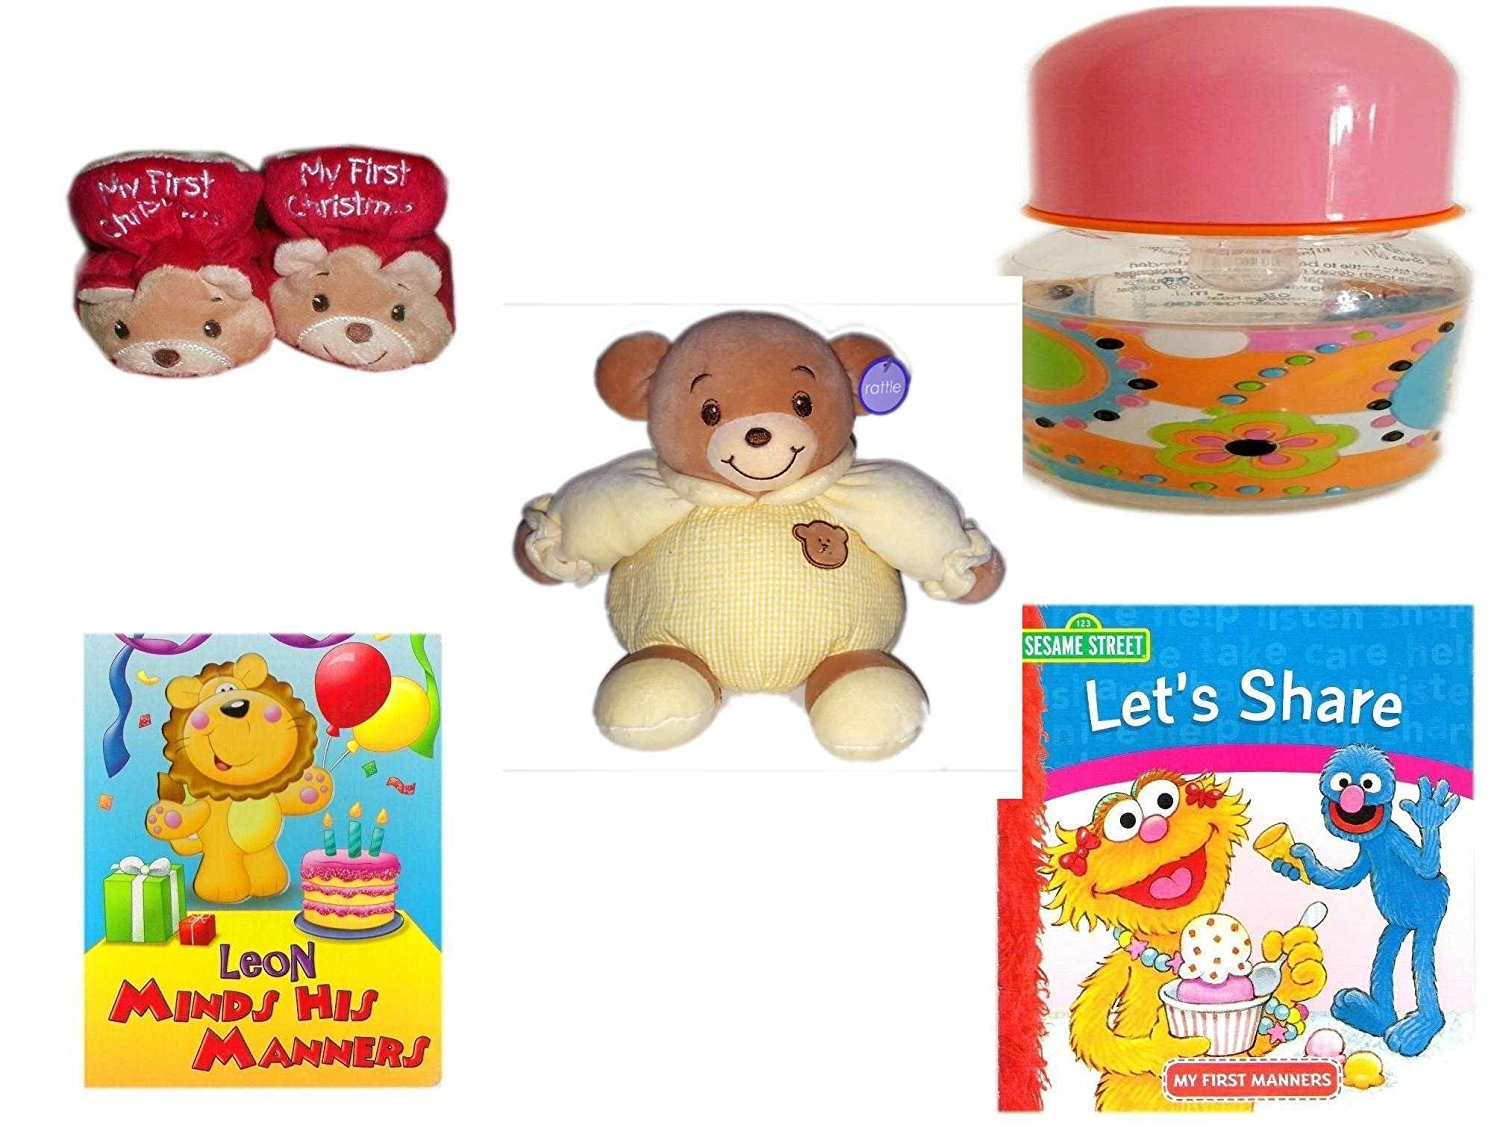 Children's Gift Bundle - Ages 0-2 [5 Piece] - Dan Dee My First Christmas Baby Bear Infant Booties Size 1-2 - ID Gear Baby Bottle Pucci Look 4 oz - Baby Bow Bear Rattle Plush - Leon Minds His Manners